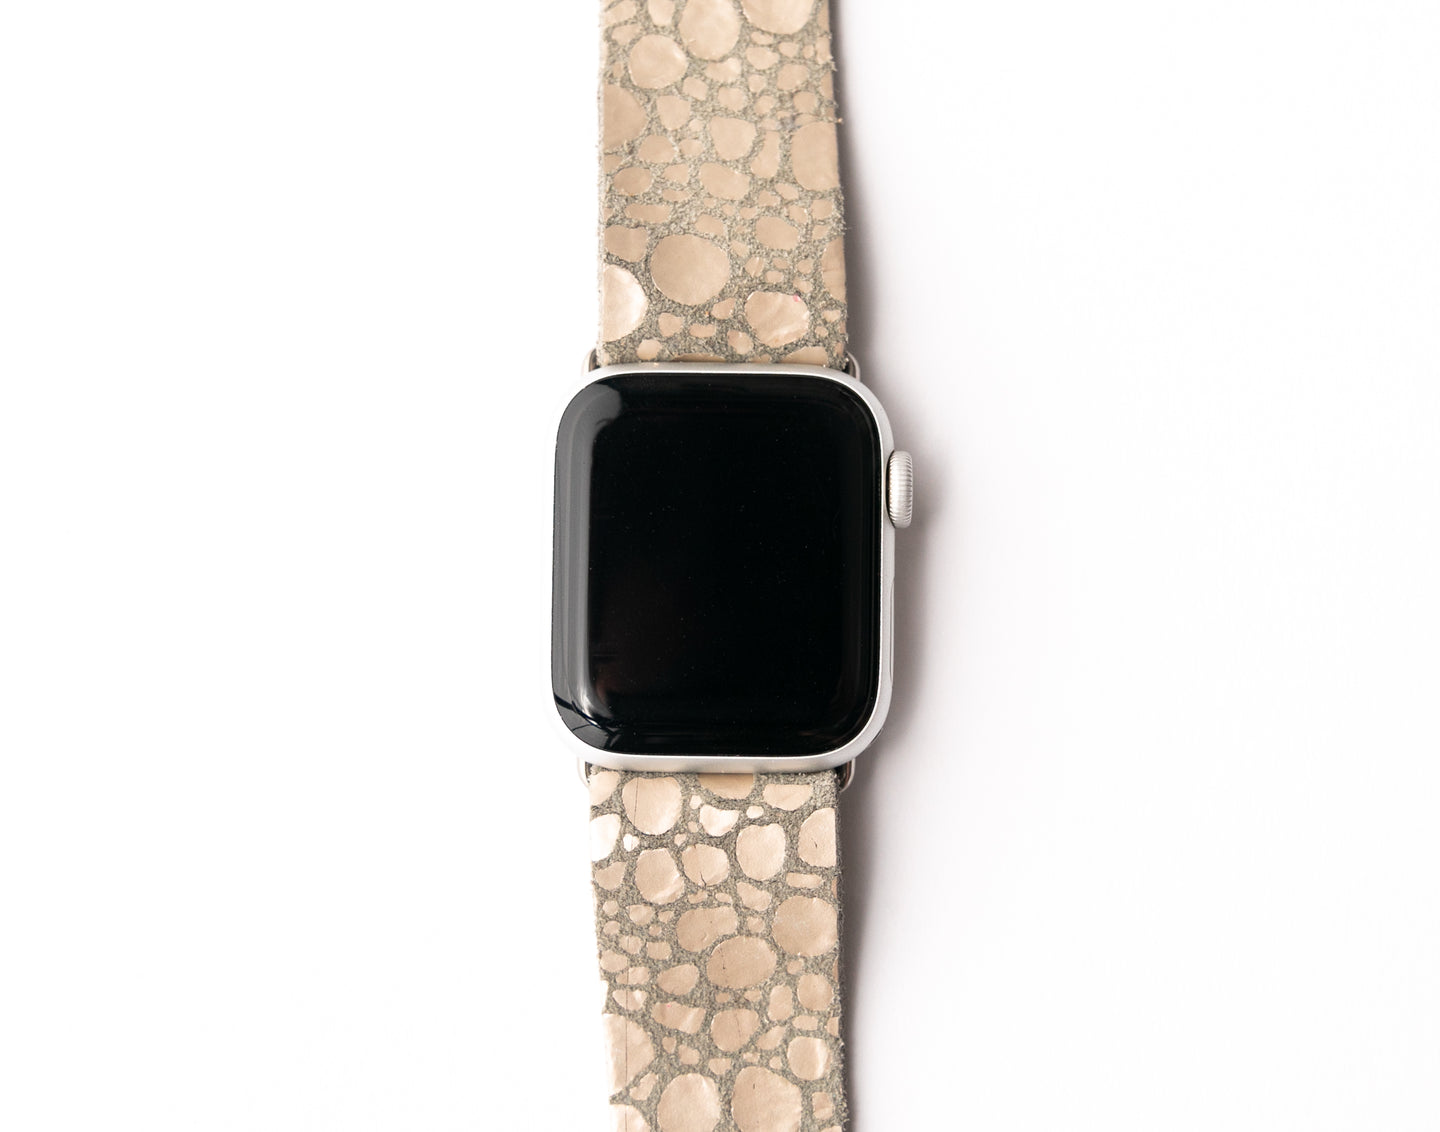 Pebbles in Platinum Watch Band